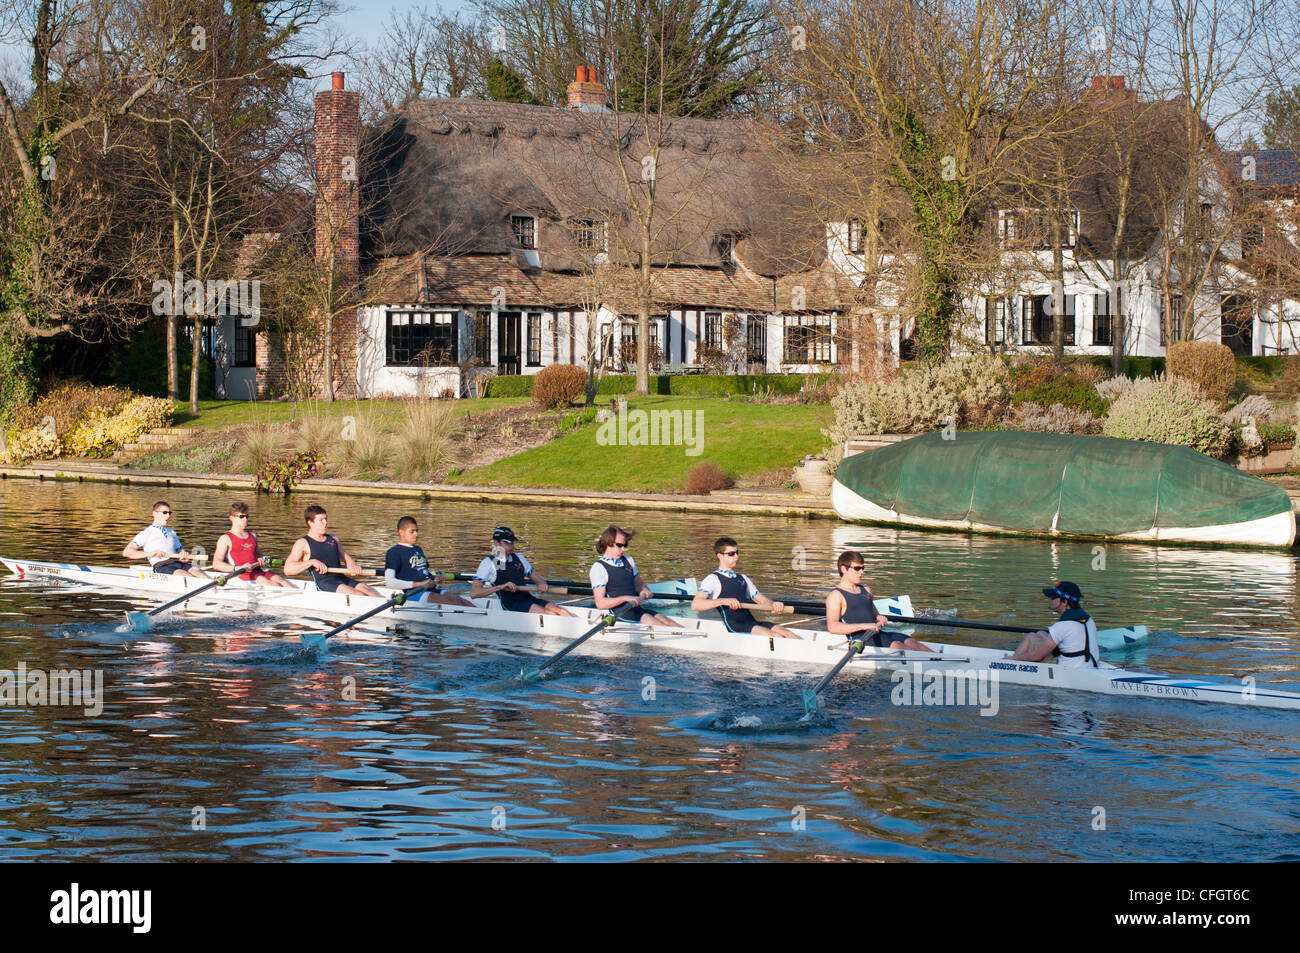 Rowing team go past picturesque thatched cottage at Fen Ditton, Cambridgeshire, England. - Stock Image